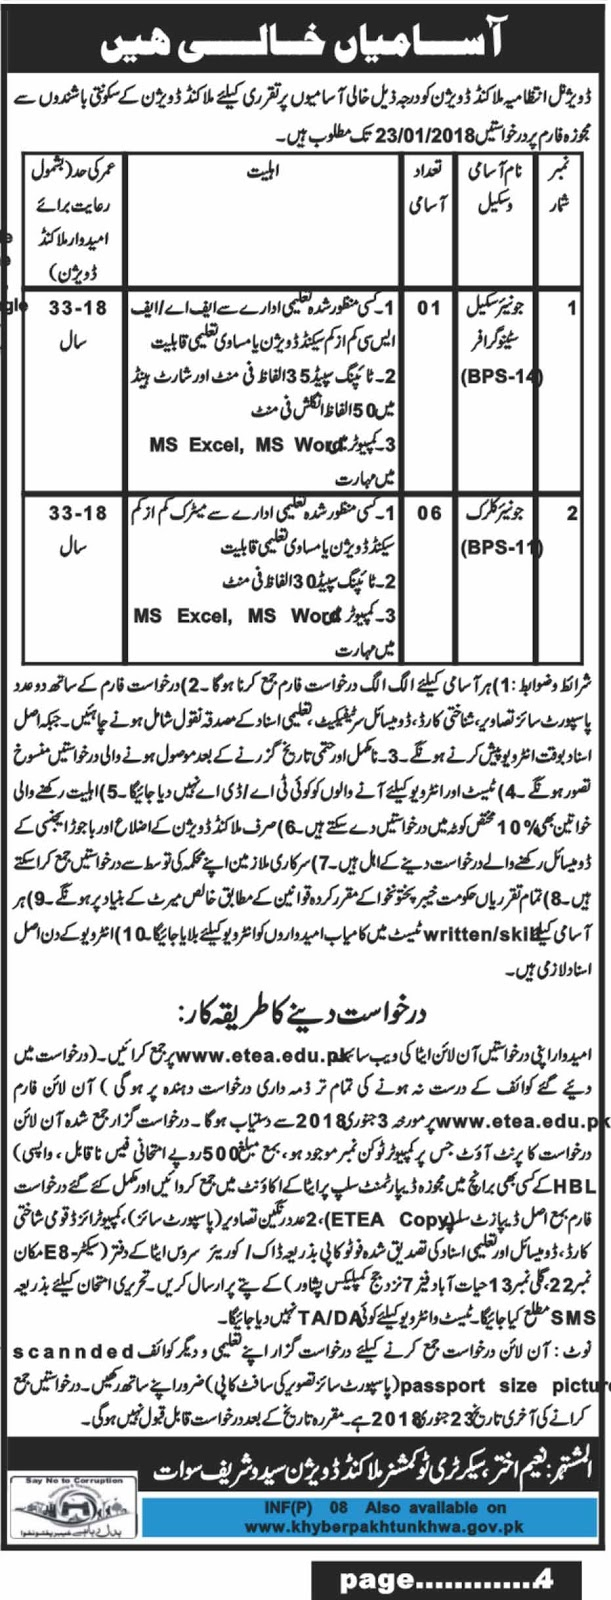 Stenographer, Junior Clerk Jobs In Malakand Division - ETEA Jobs 2018